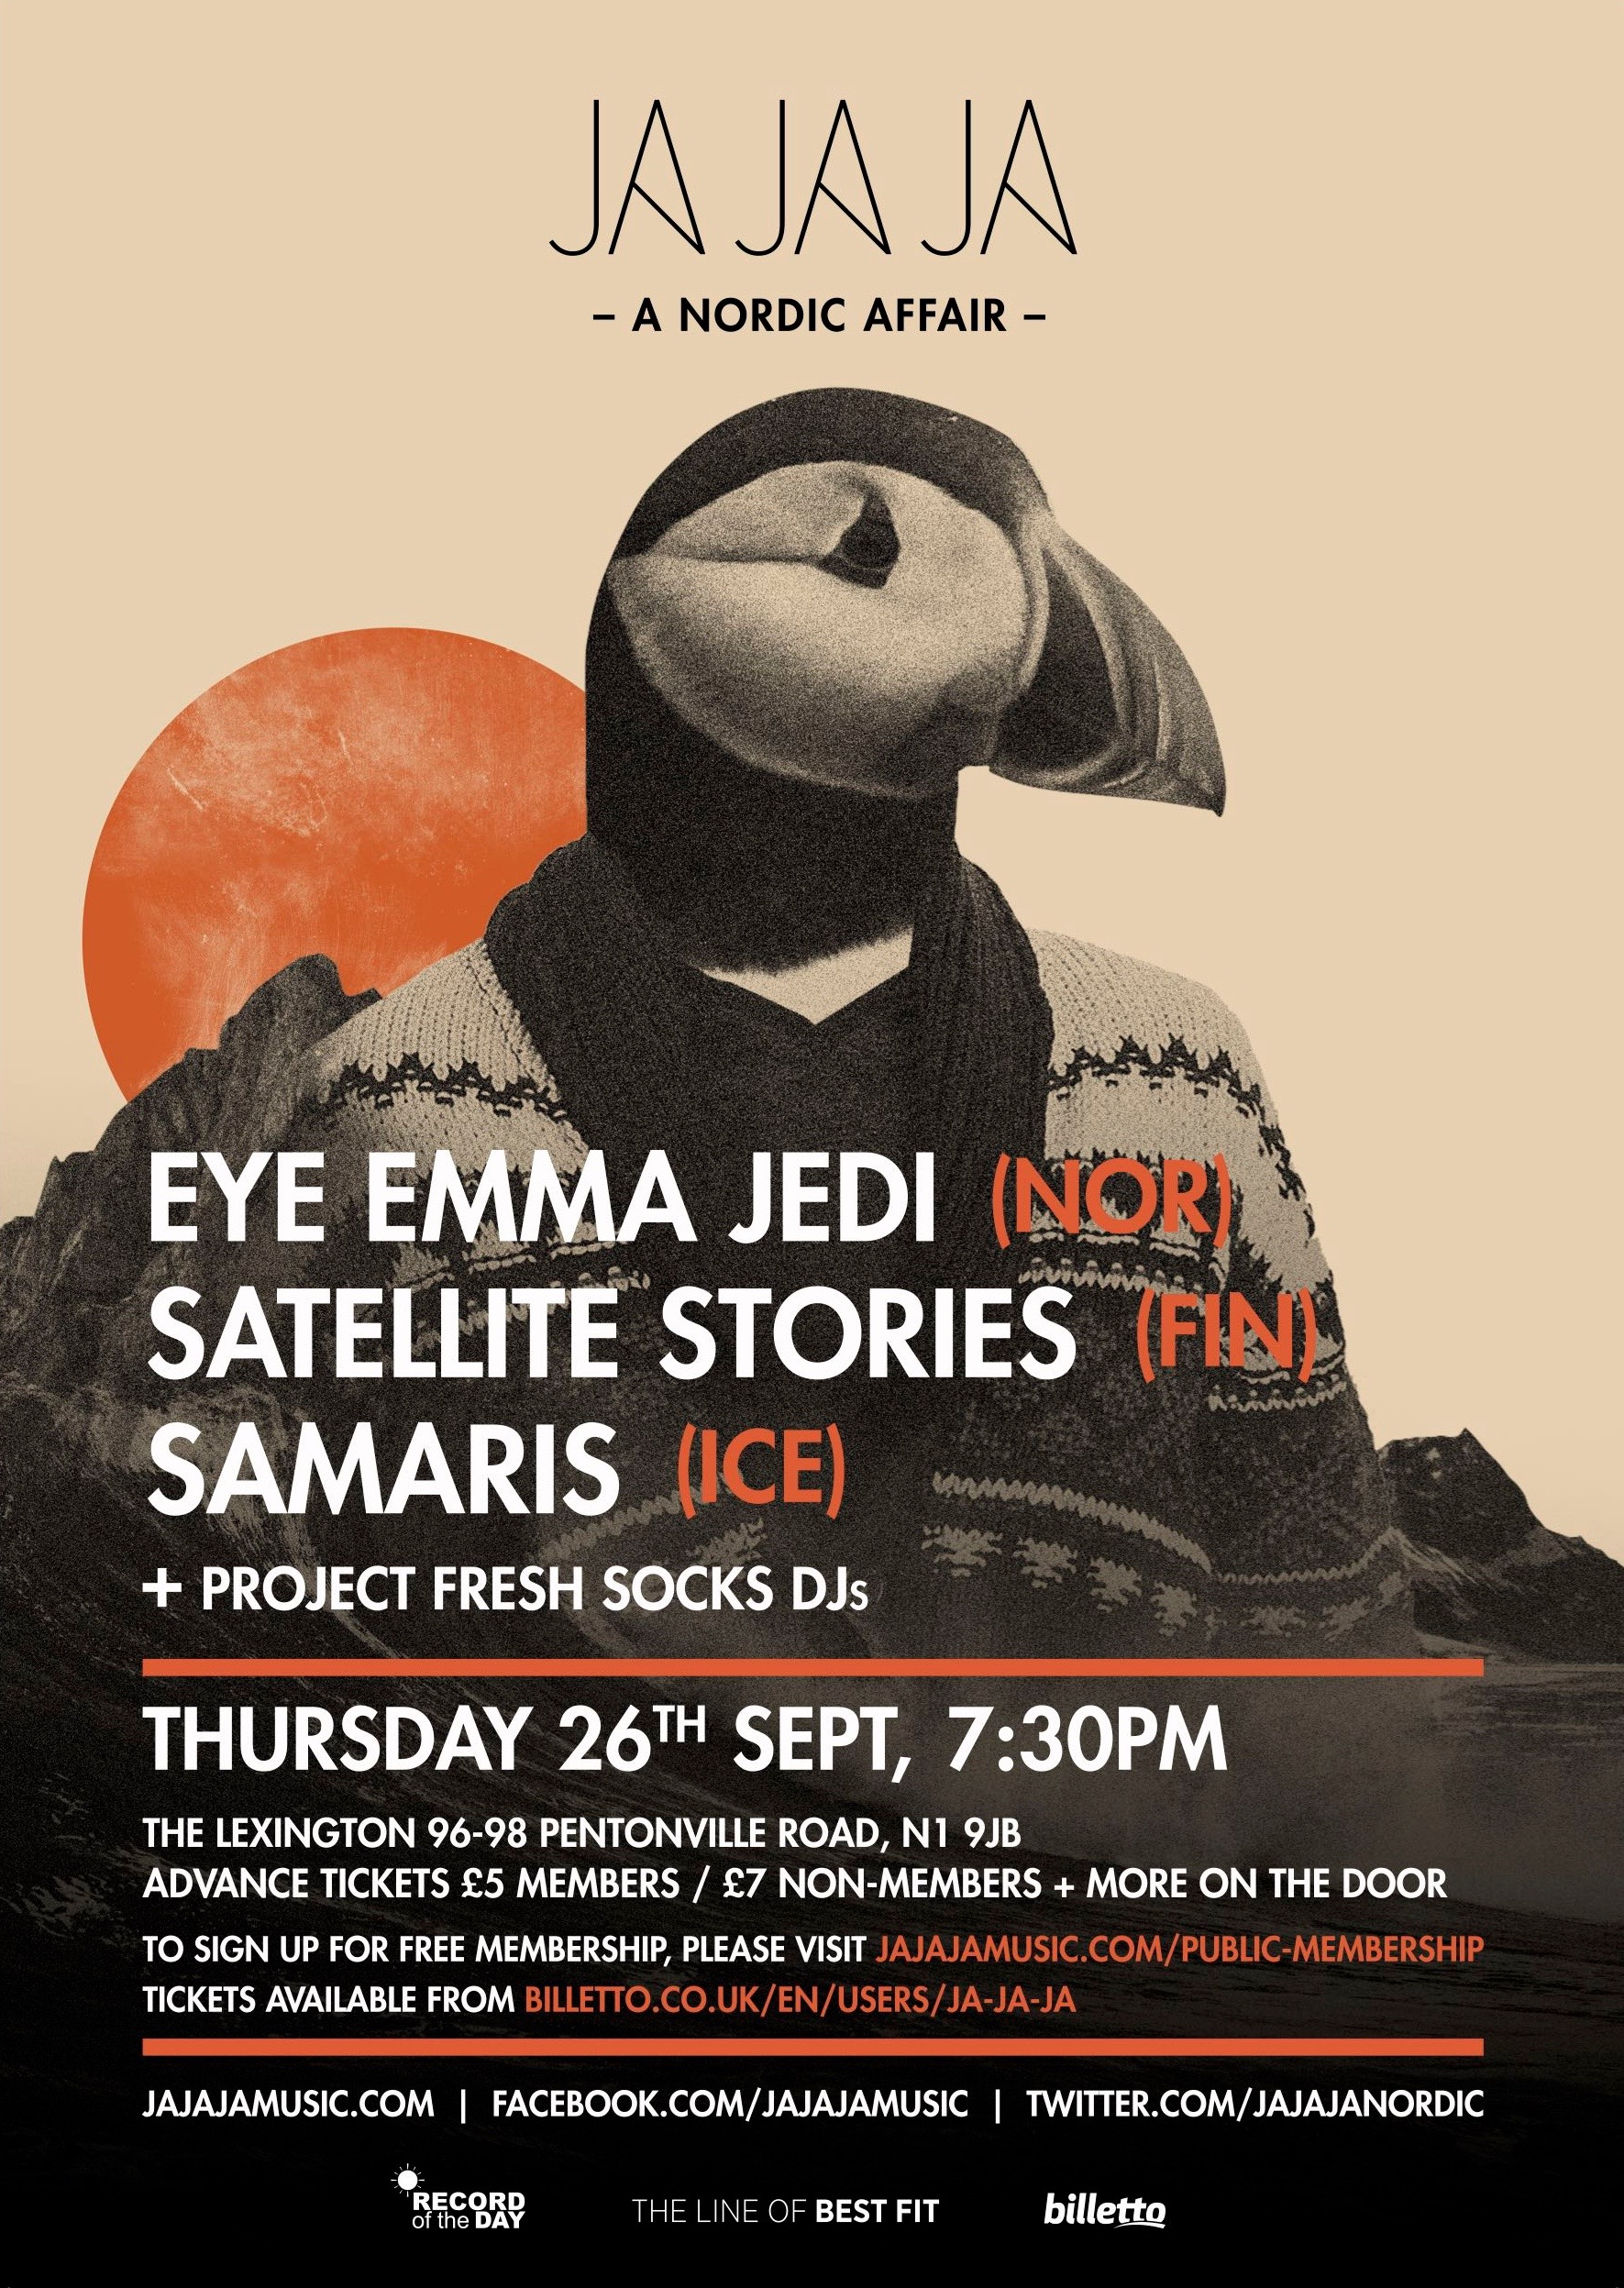 September 2013 – Eye Emma Jedi, Satellite Stories & Samaris